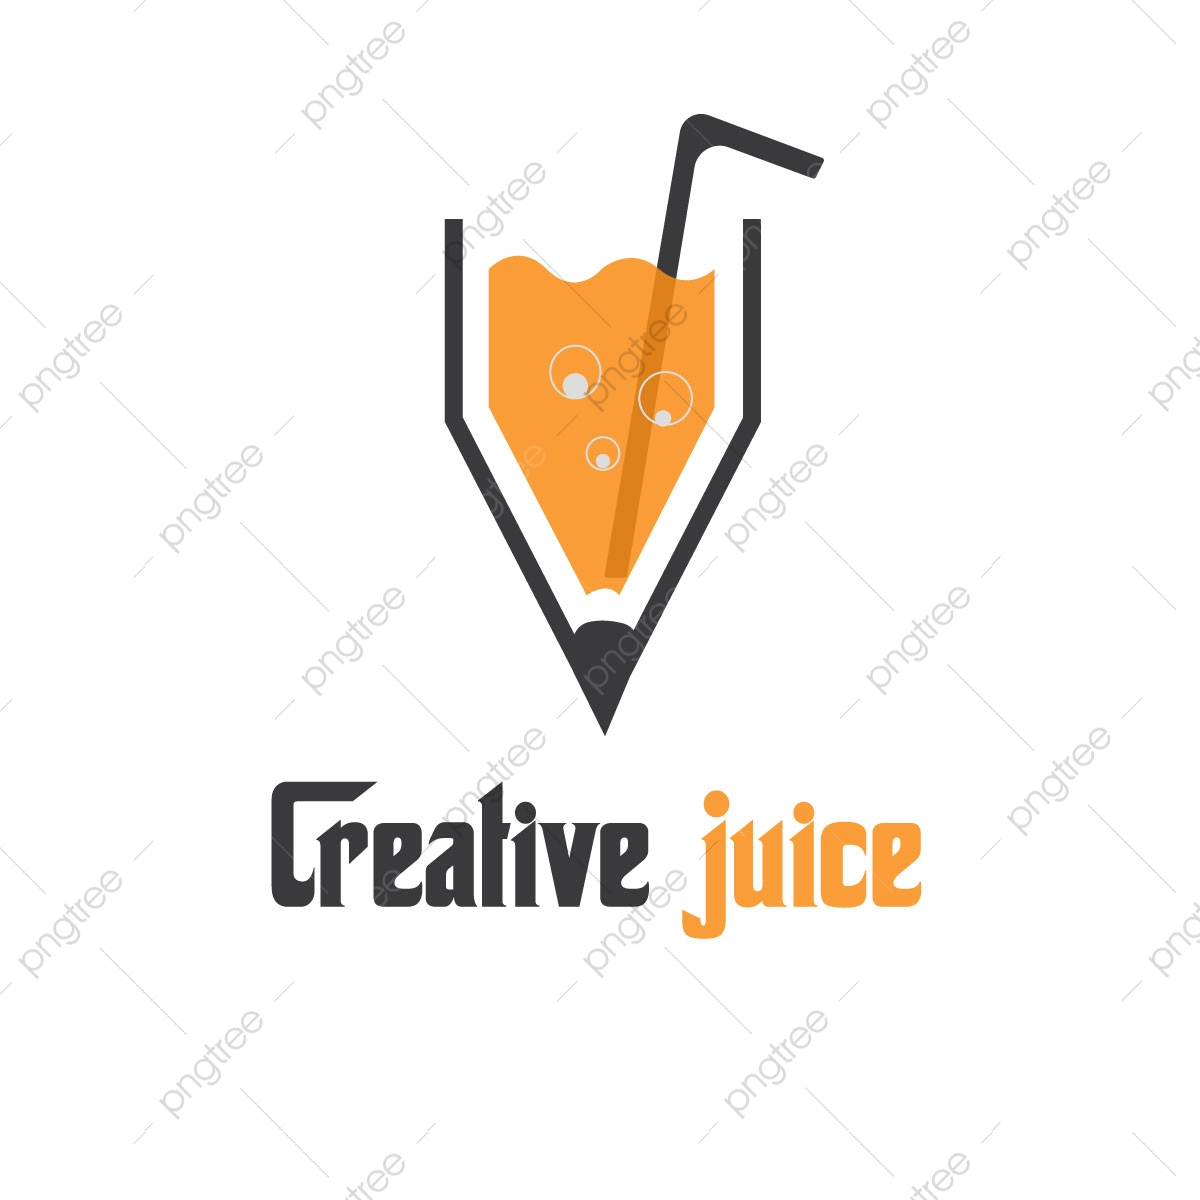 juice logo png images vector and psd files free download on pngtree https pngtree com freepng creative juice logo design 5334978 html